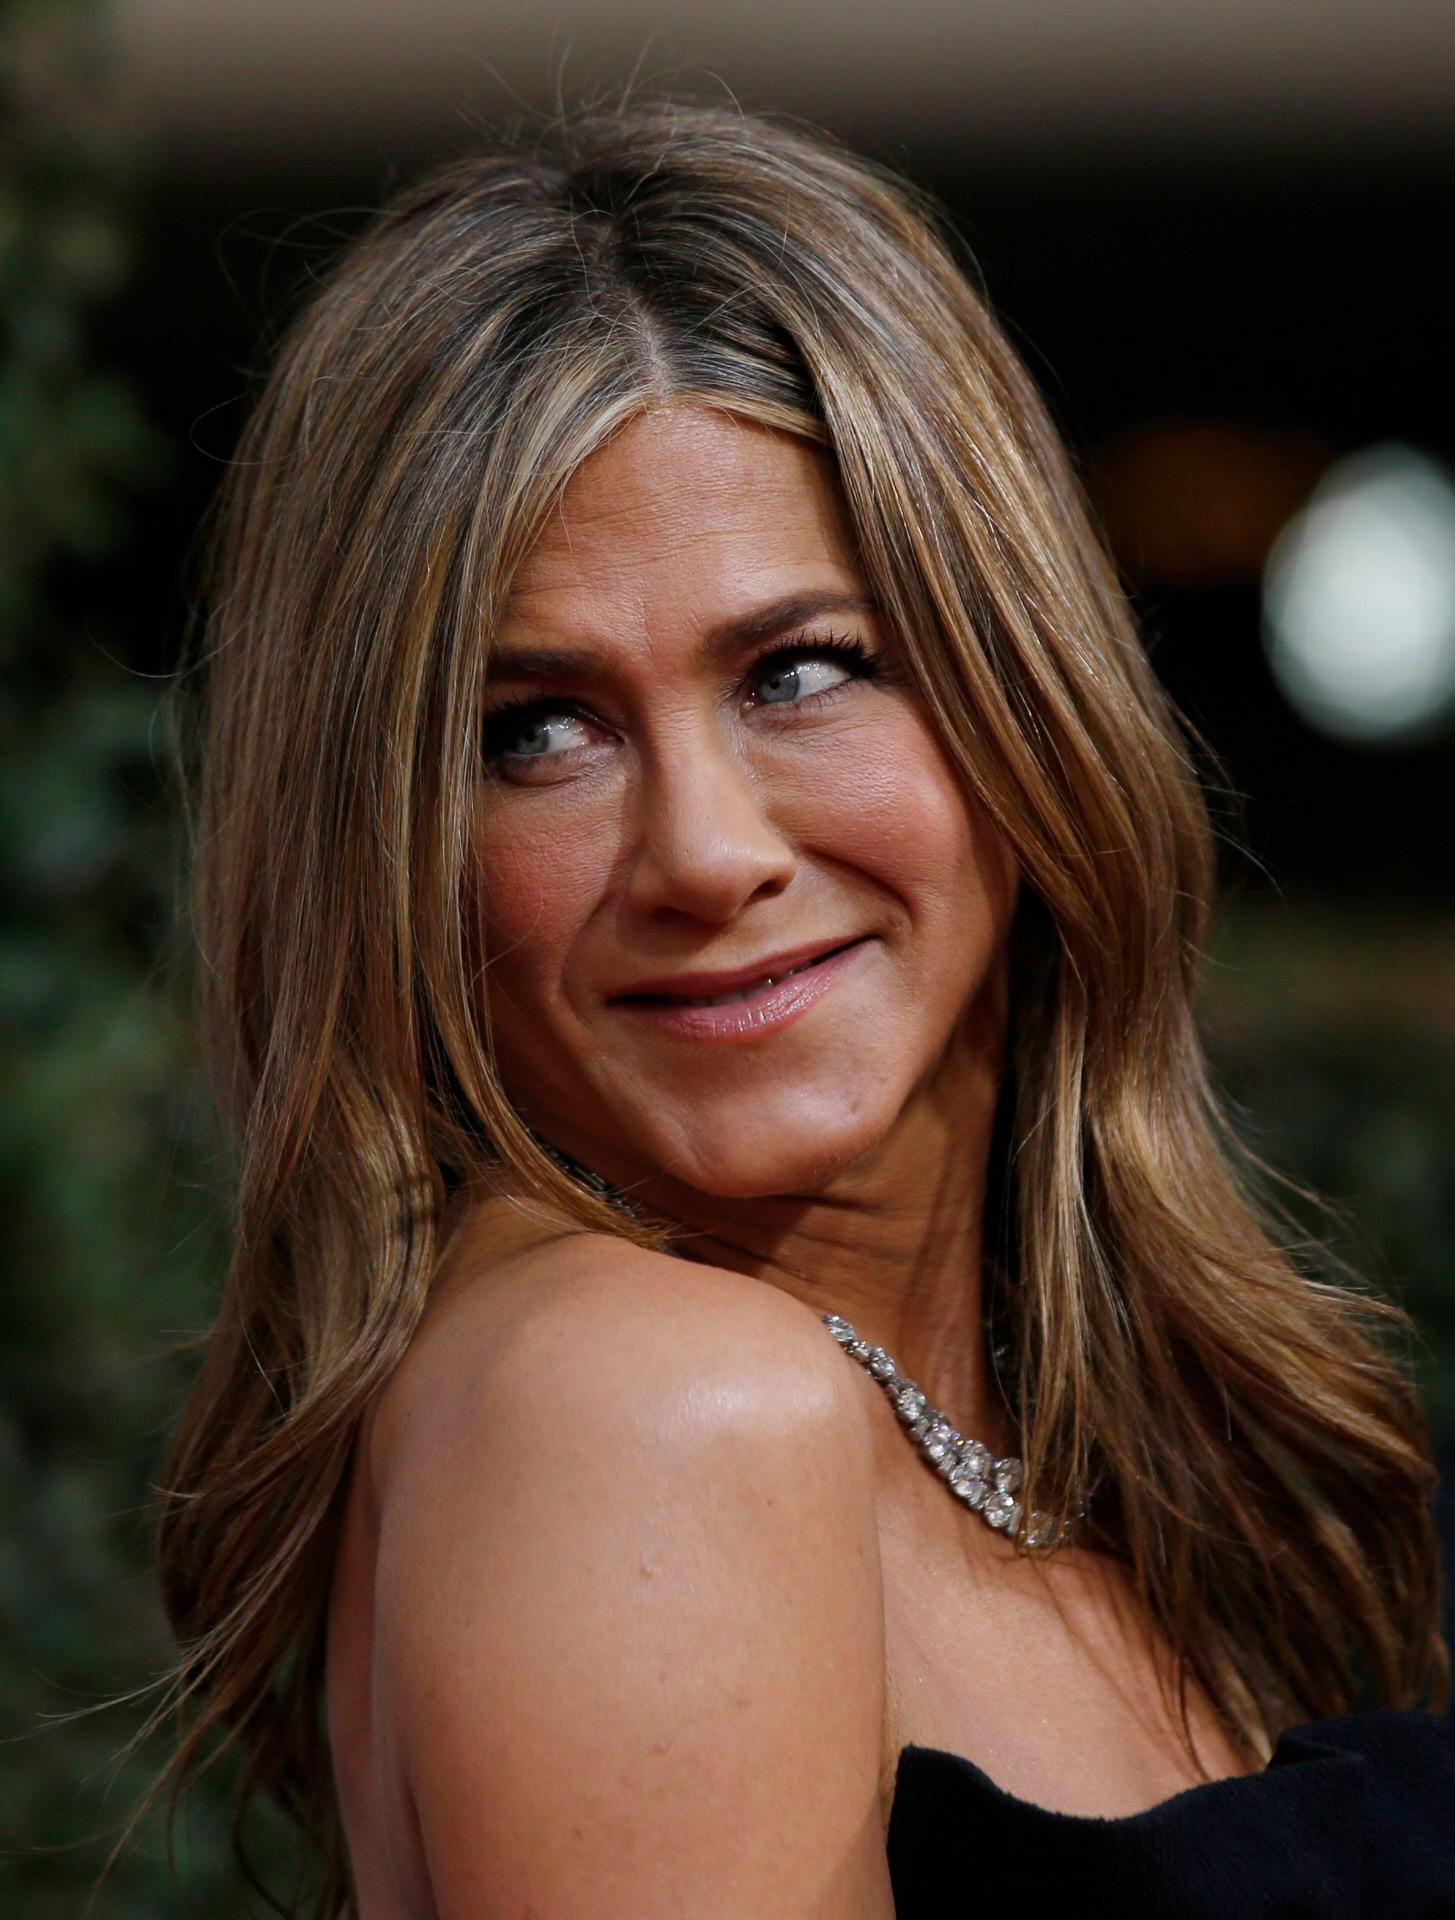 DL u446162 337. Jennifer Aniston